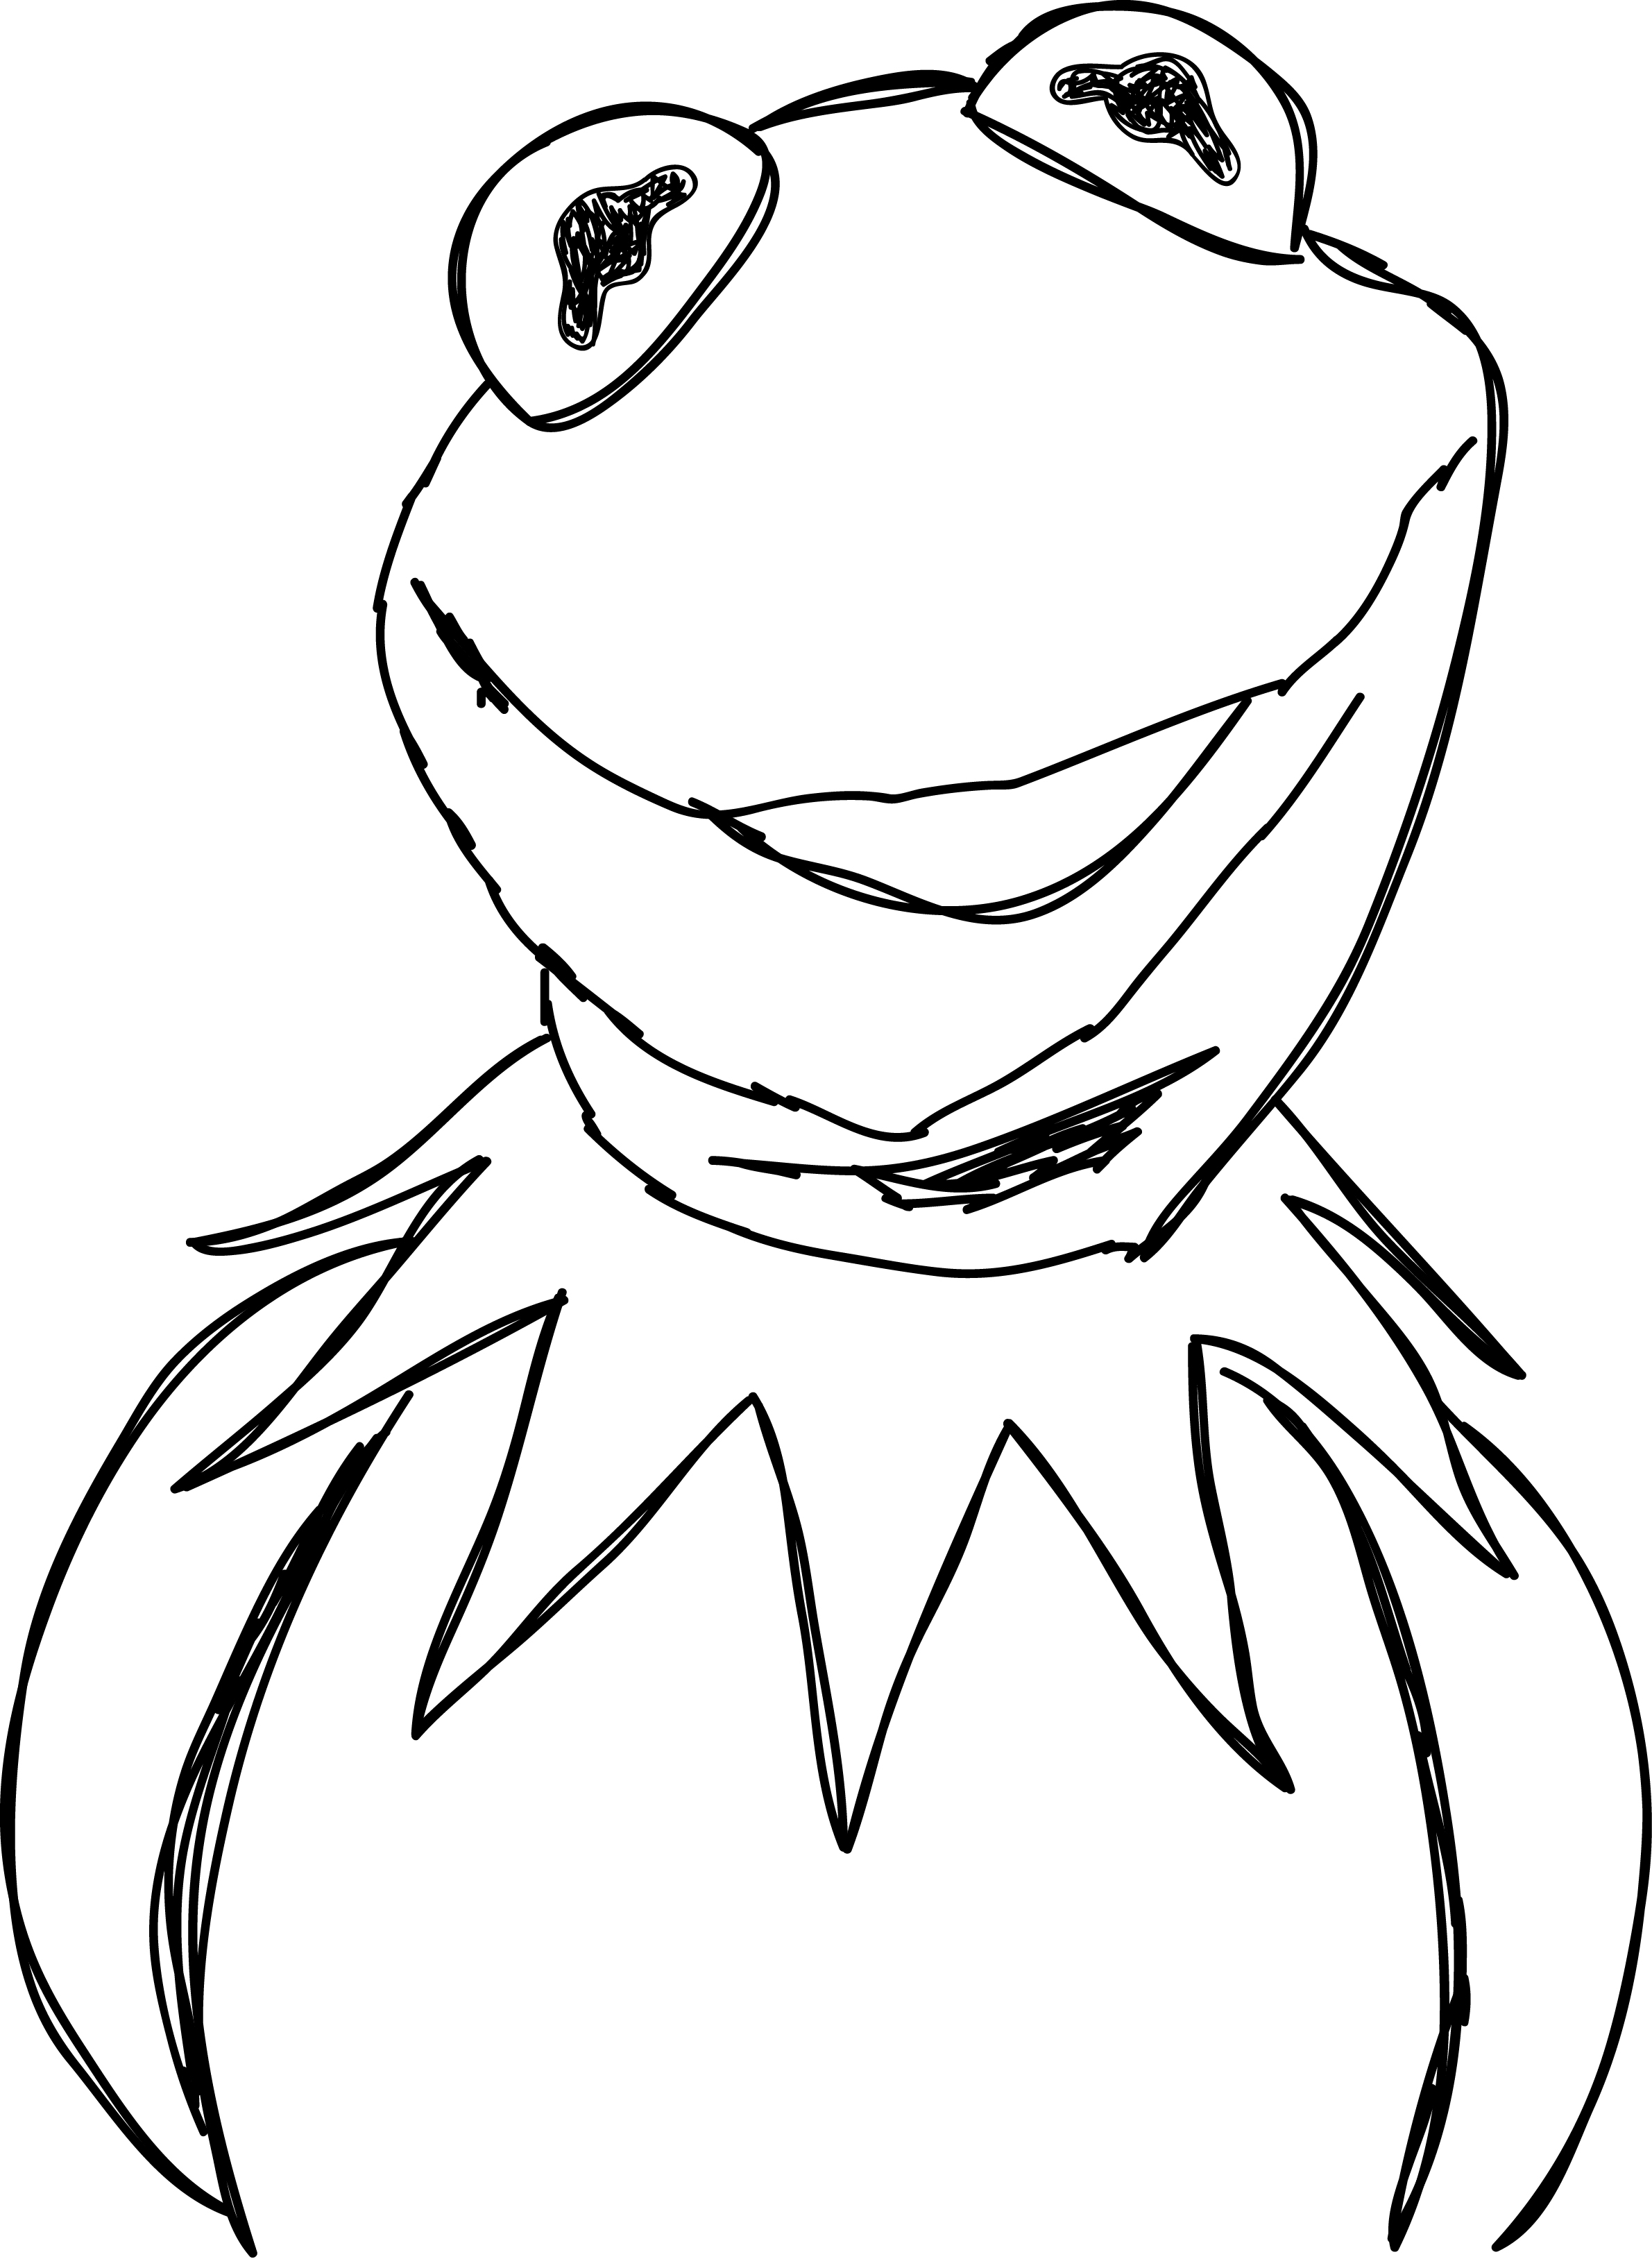 Frog Line Drawing at GetDrawings | Free download